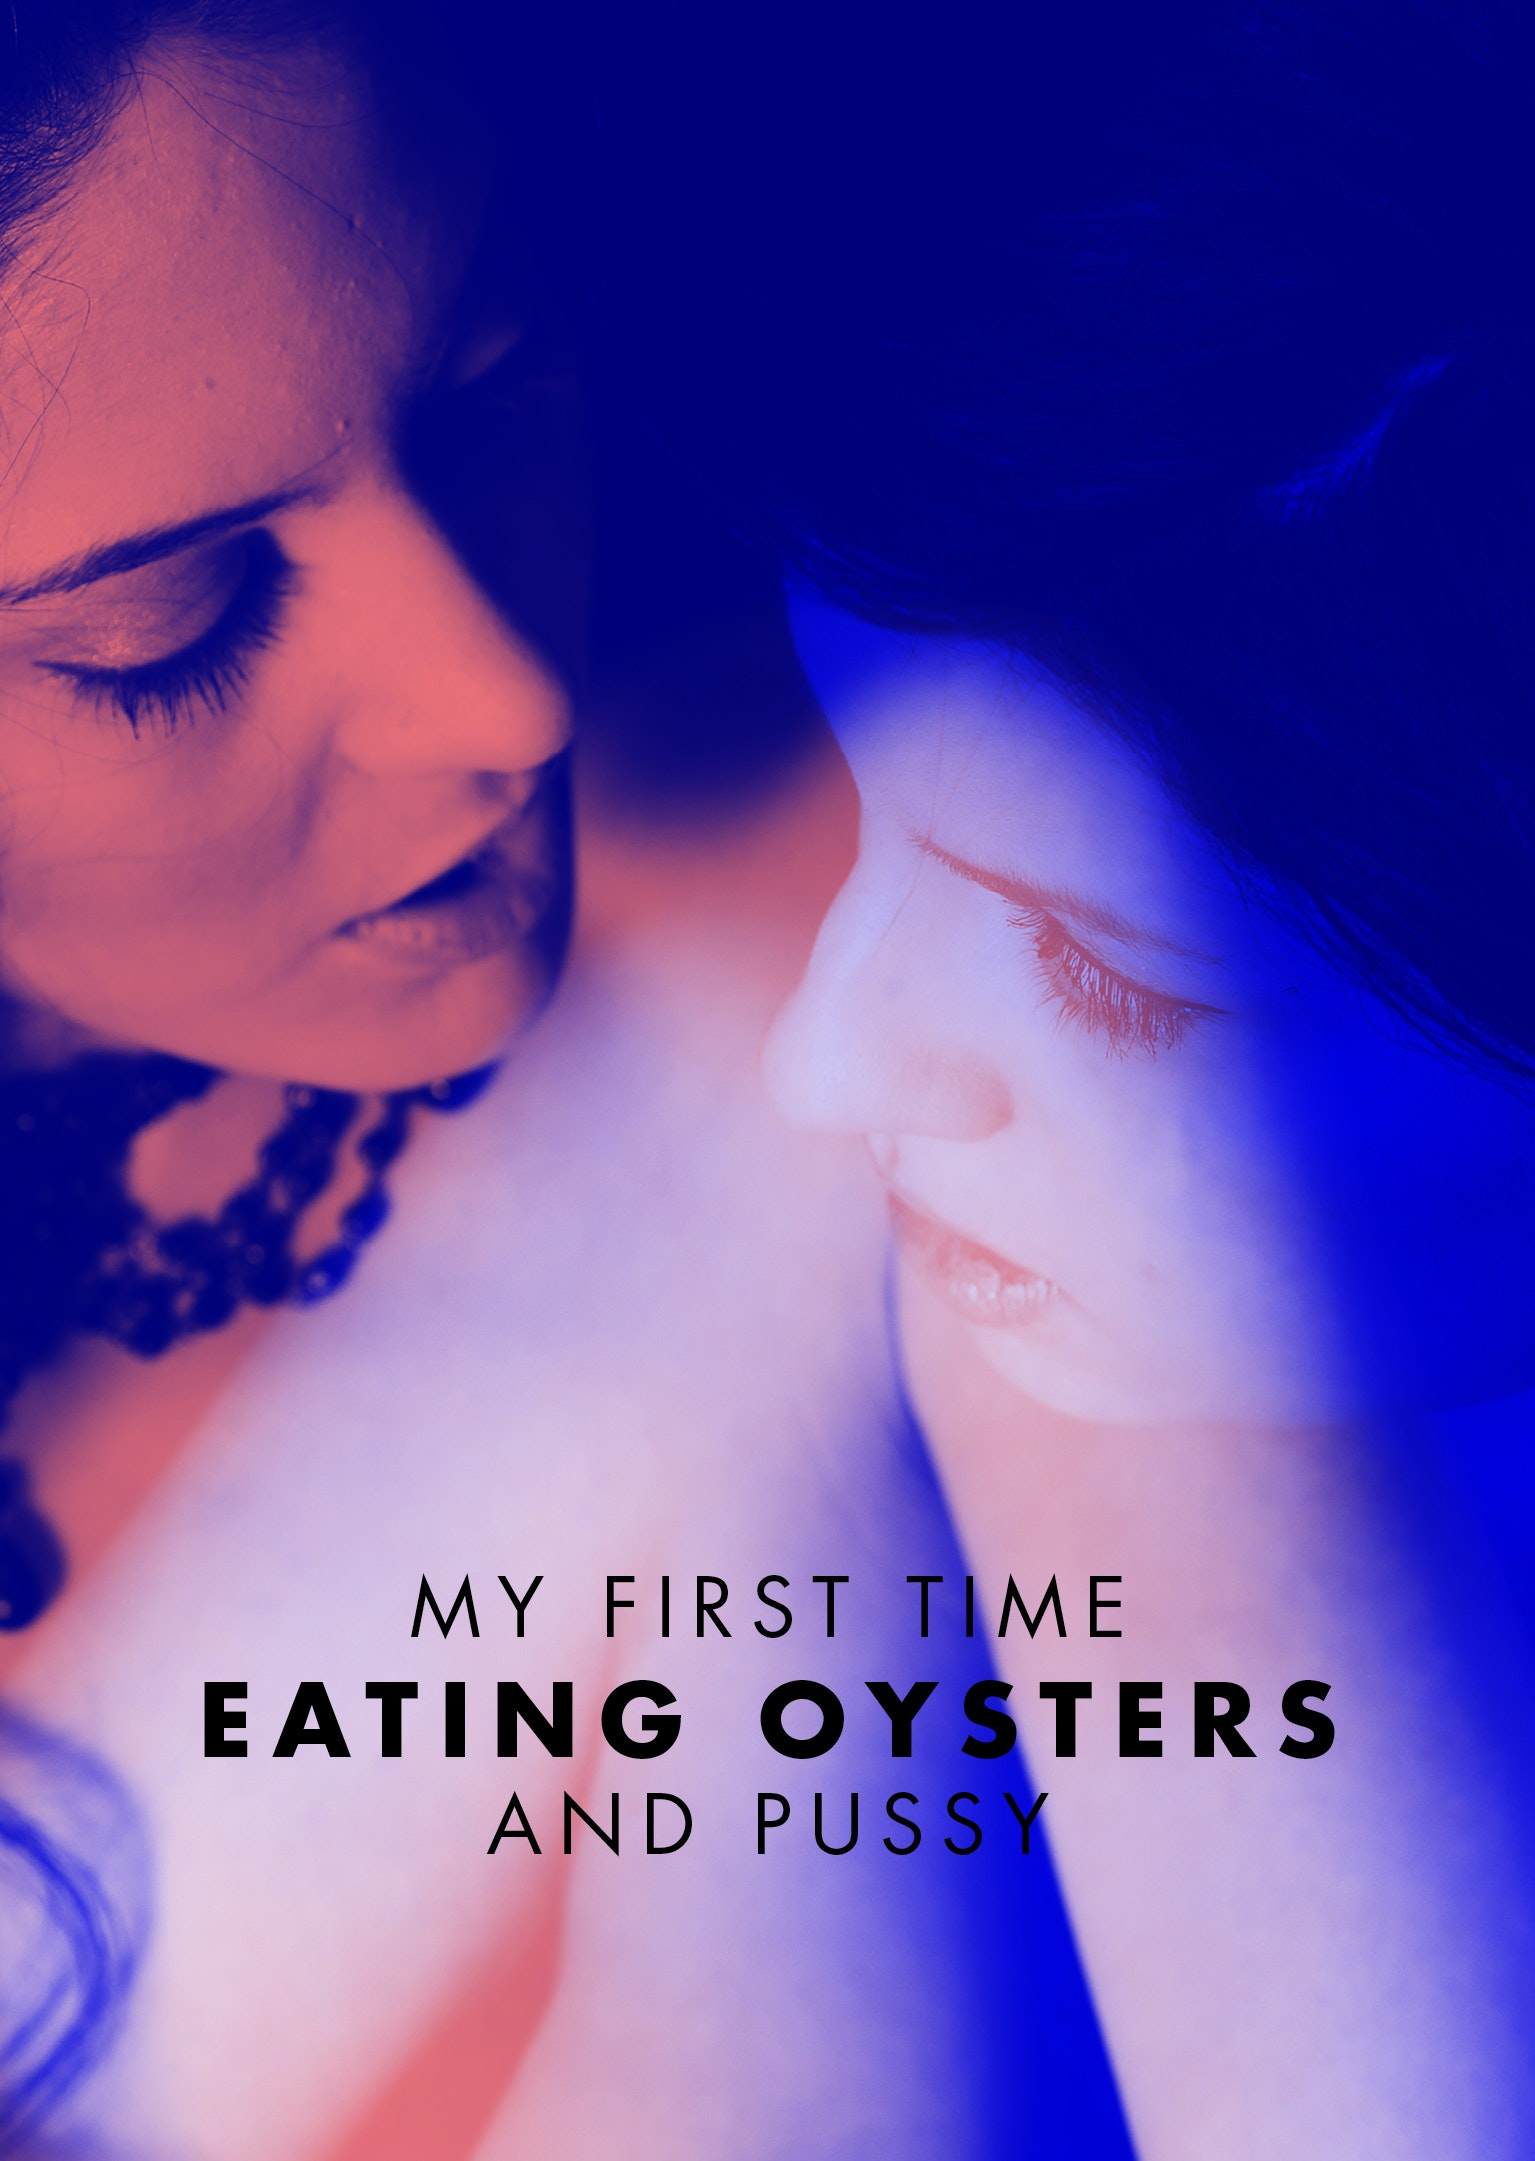 From The Xconfessions Series In This Installation A Woman Recounts Her Sensual First Encounter Eating Rich Aphrodisiacs And Making Love With Another Woman